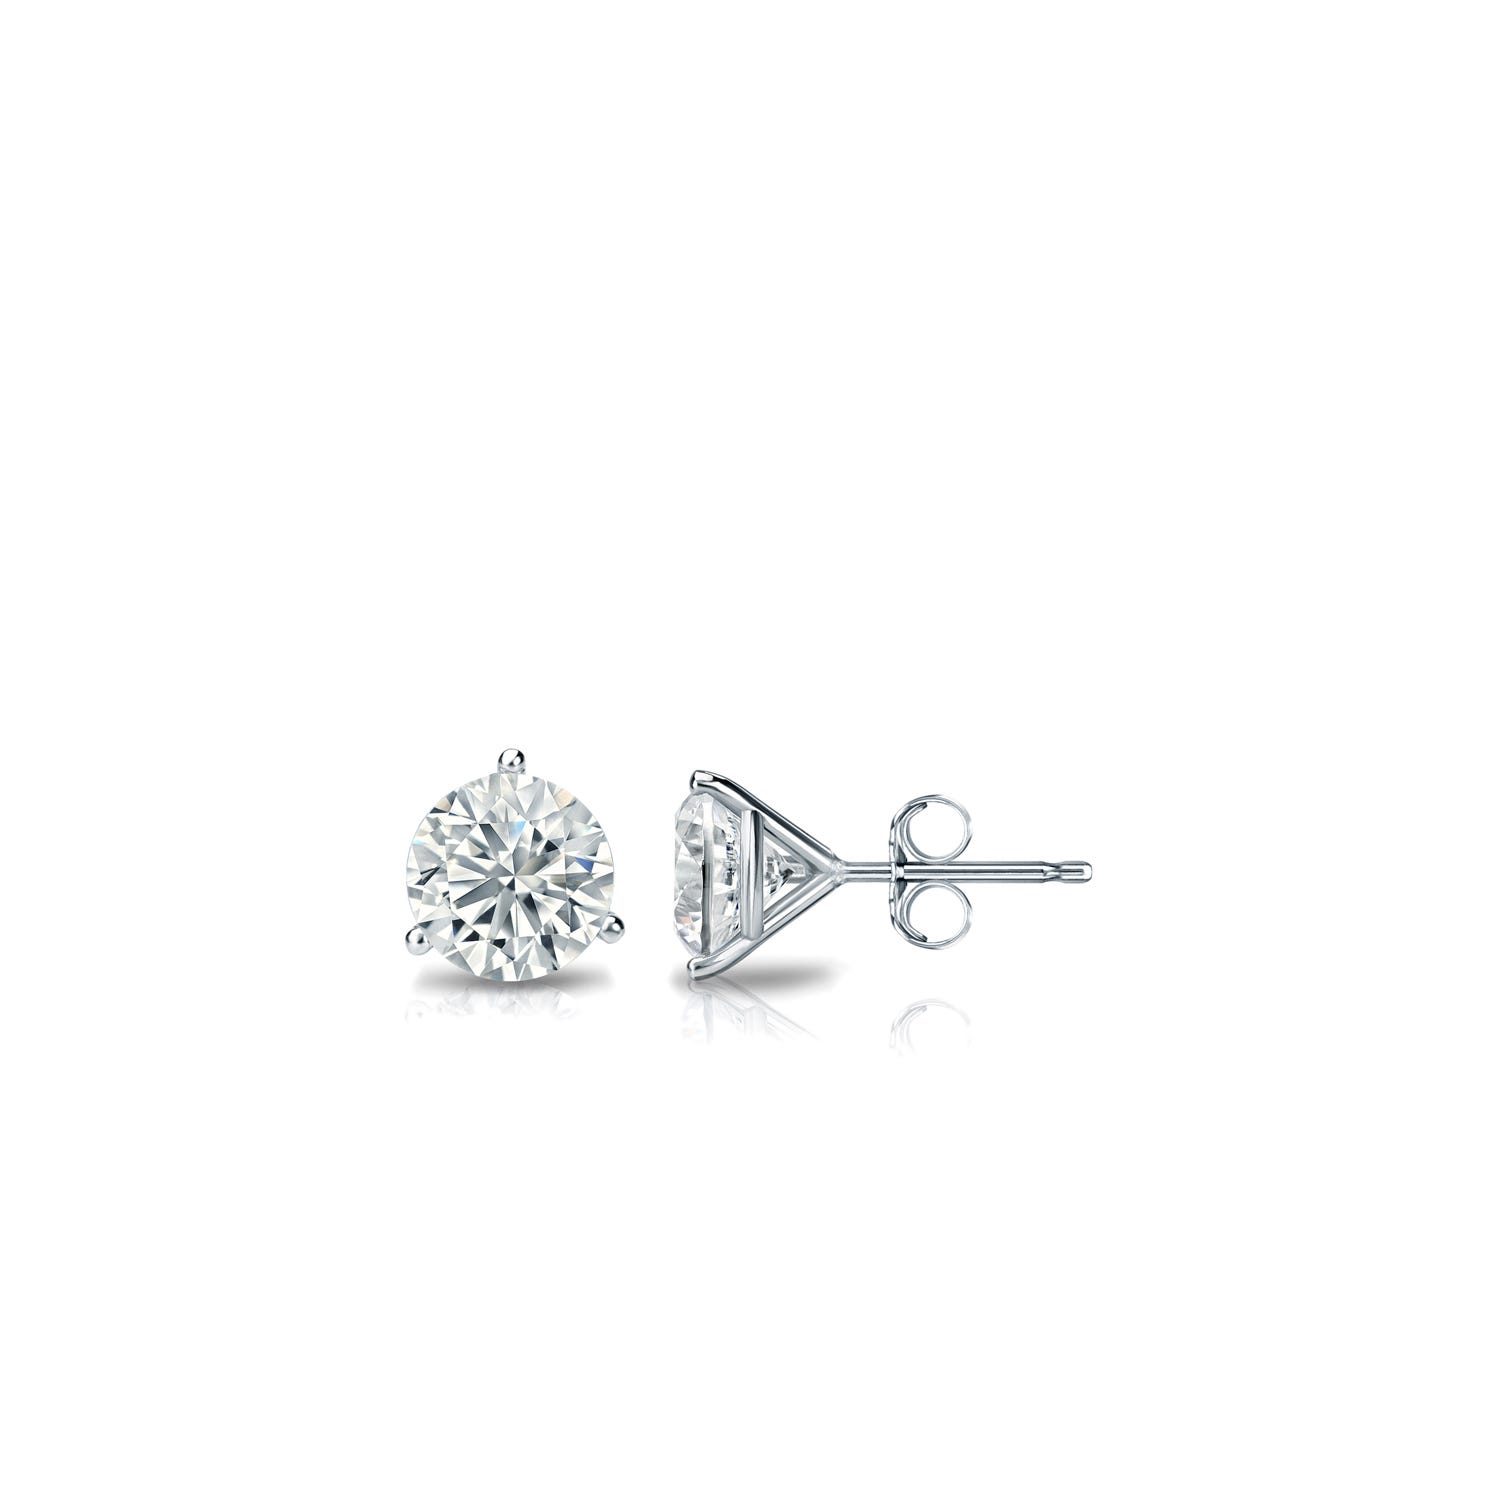 1/6 CTTW Round Diamond Solitaire Stud Earrings IJ SI2 in 18K White Gold 3-Prong Setting